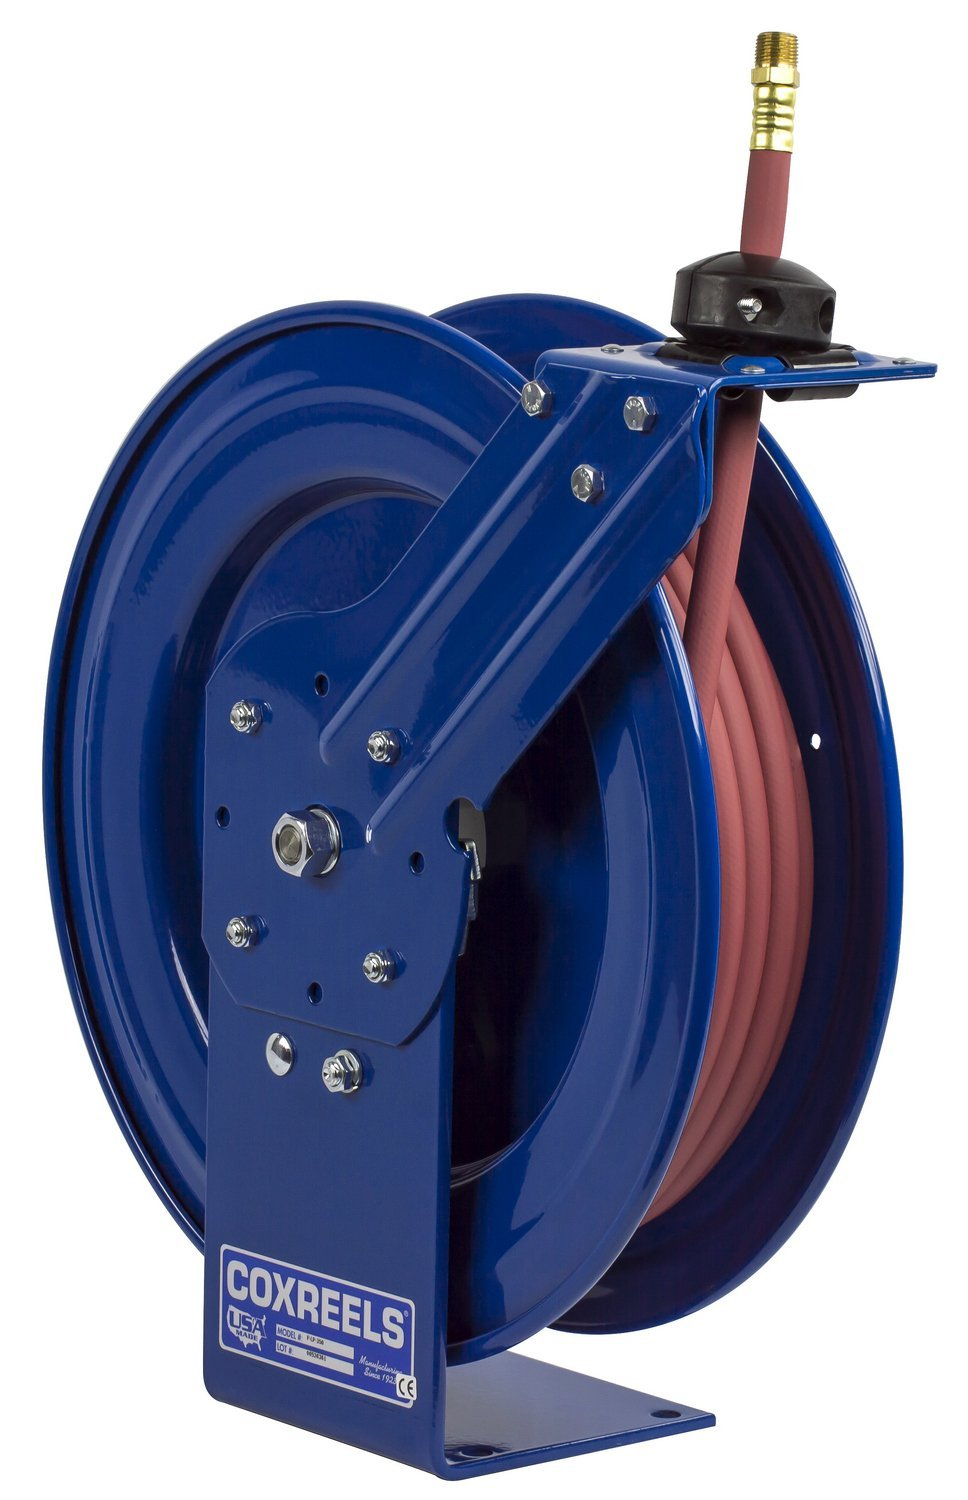 Coxreels P LP 125 Low Pressure Retractable Air/Water Hose Reel: 1